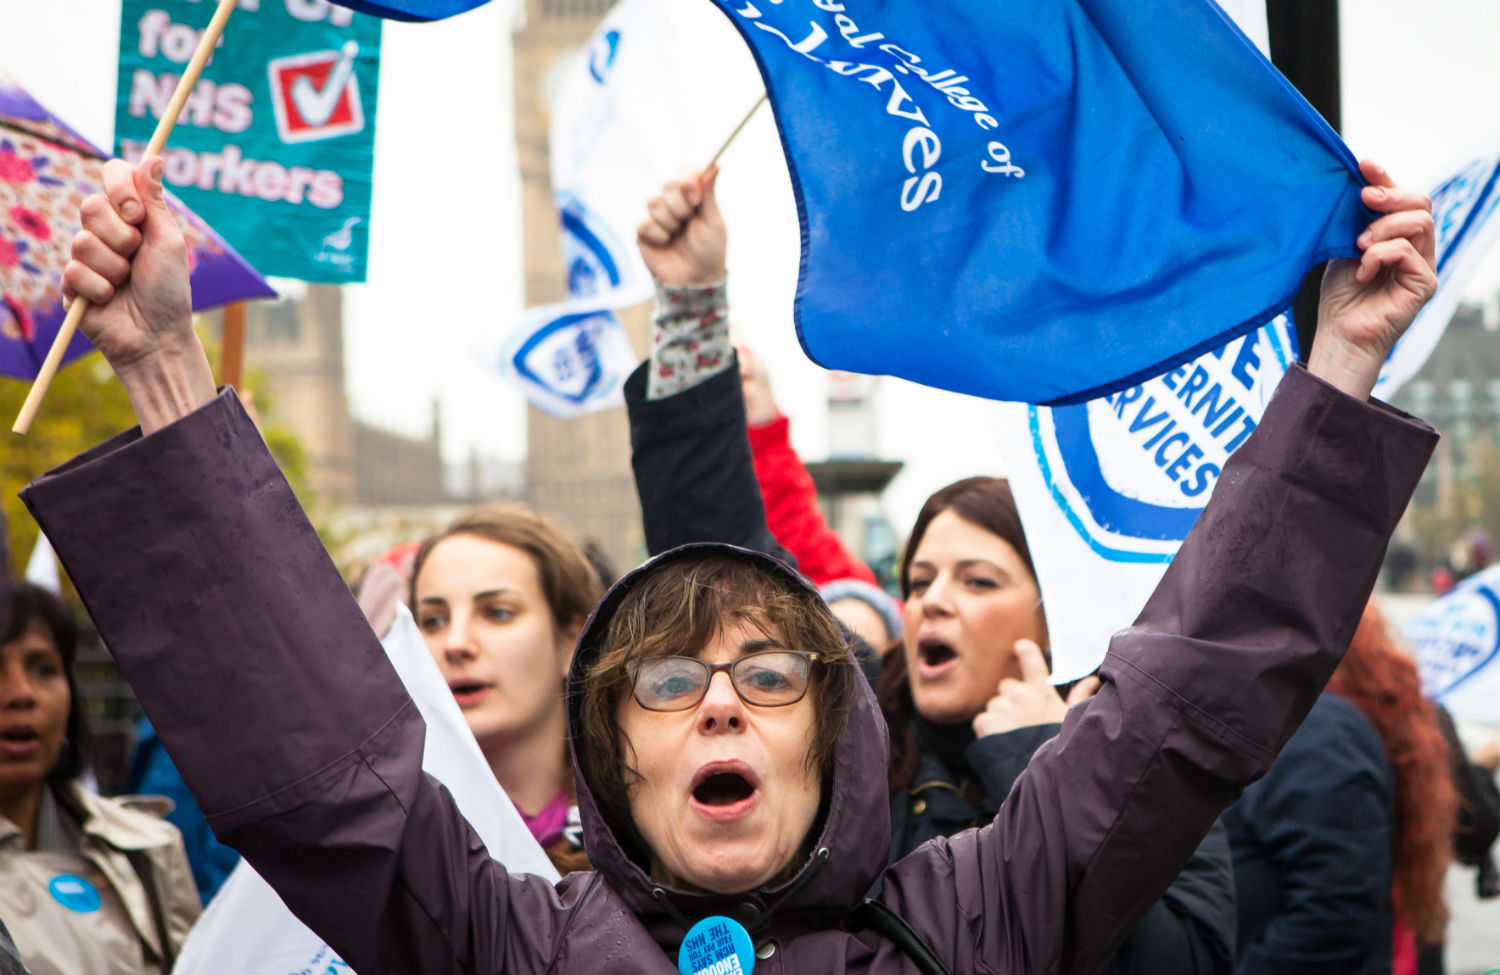 National-Health-Service-midwives-strike-for-fair-pay-in-London